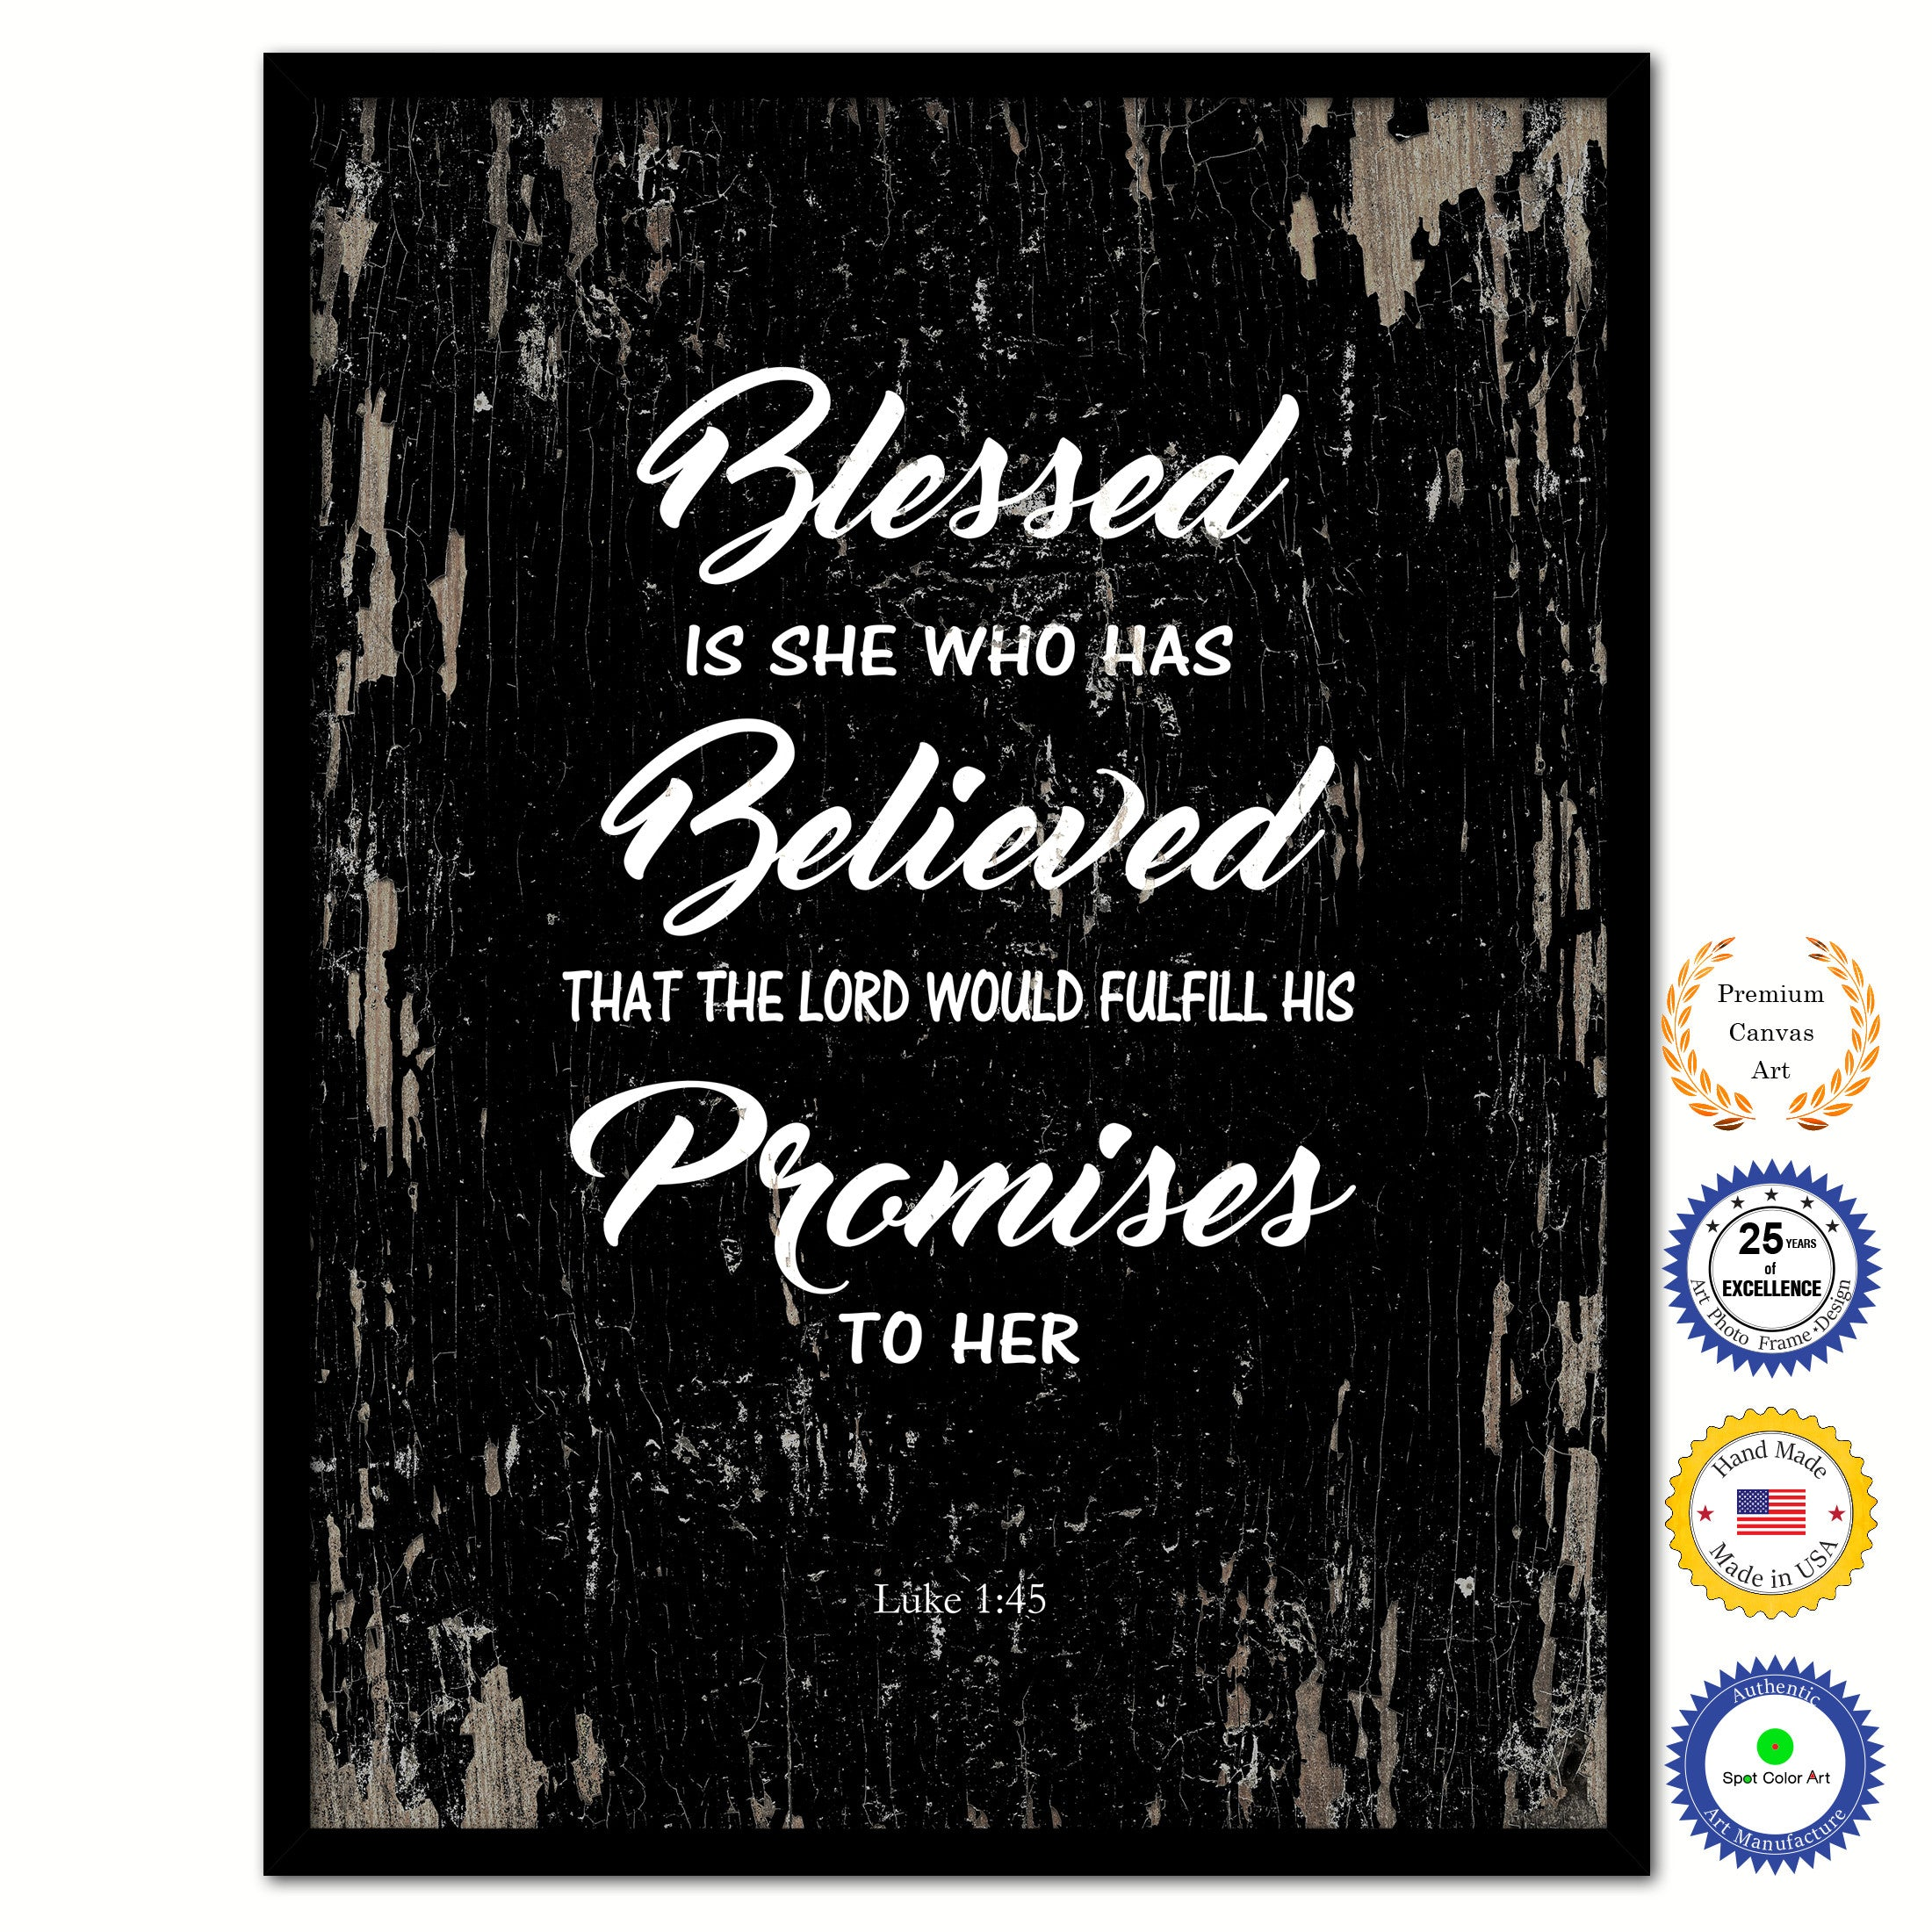 Blessed is she who has believed that the lord would fulfill his promises to  her - Luke 1:45 Bible Verse Scripture Quote Black Canvas Print with